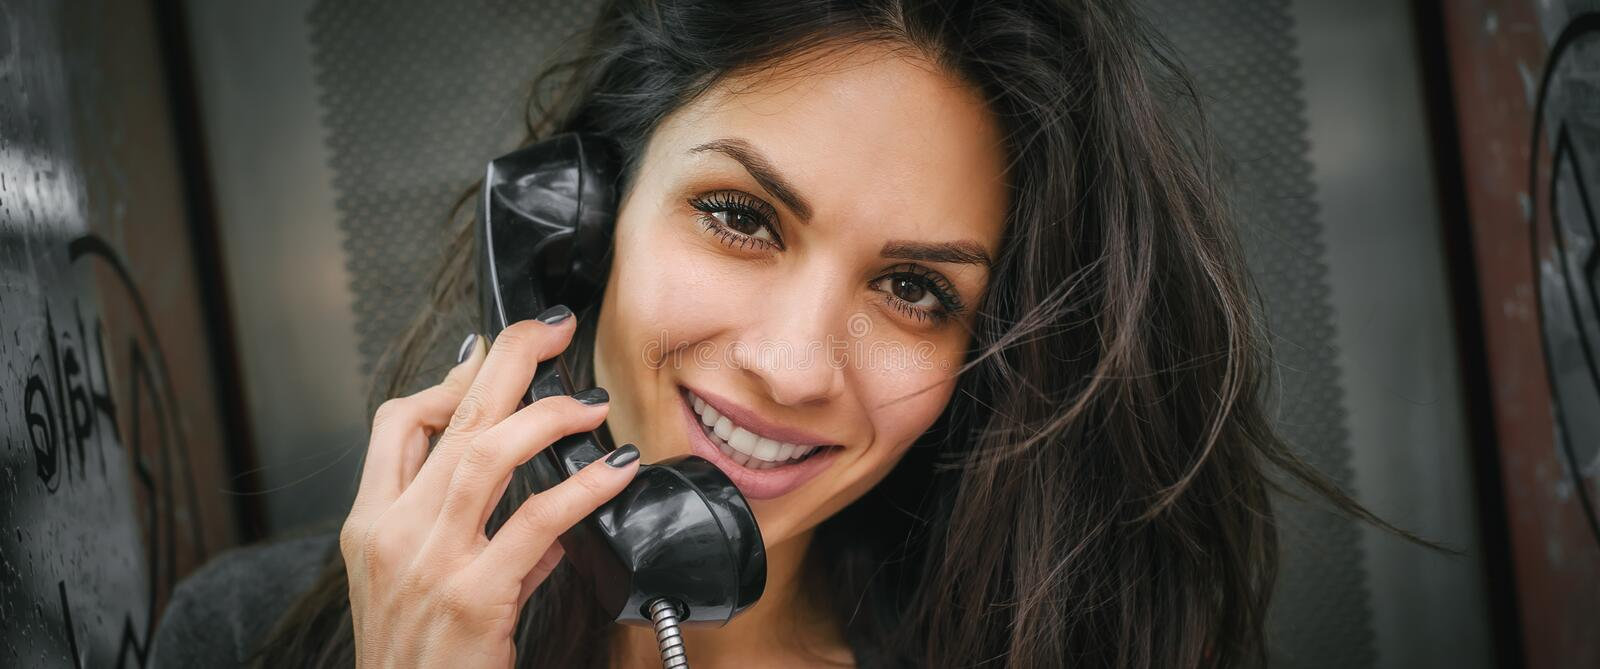 Happy and smiling woman talking in the retro phone booth royalty free stock images